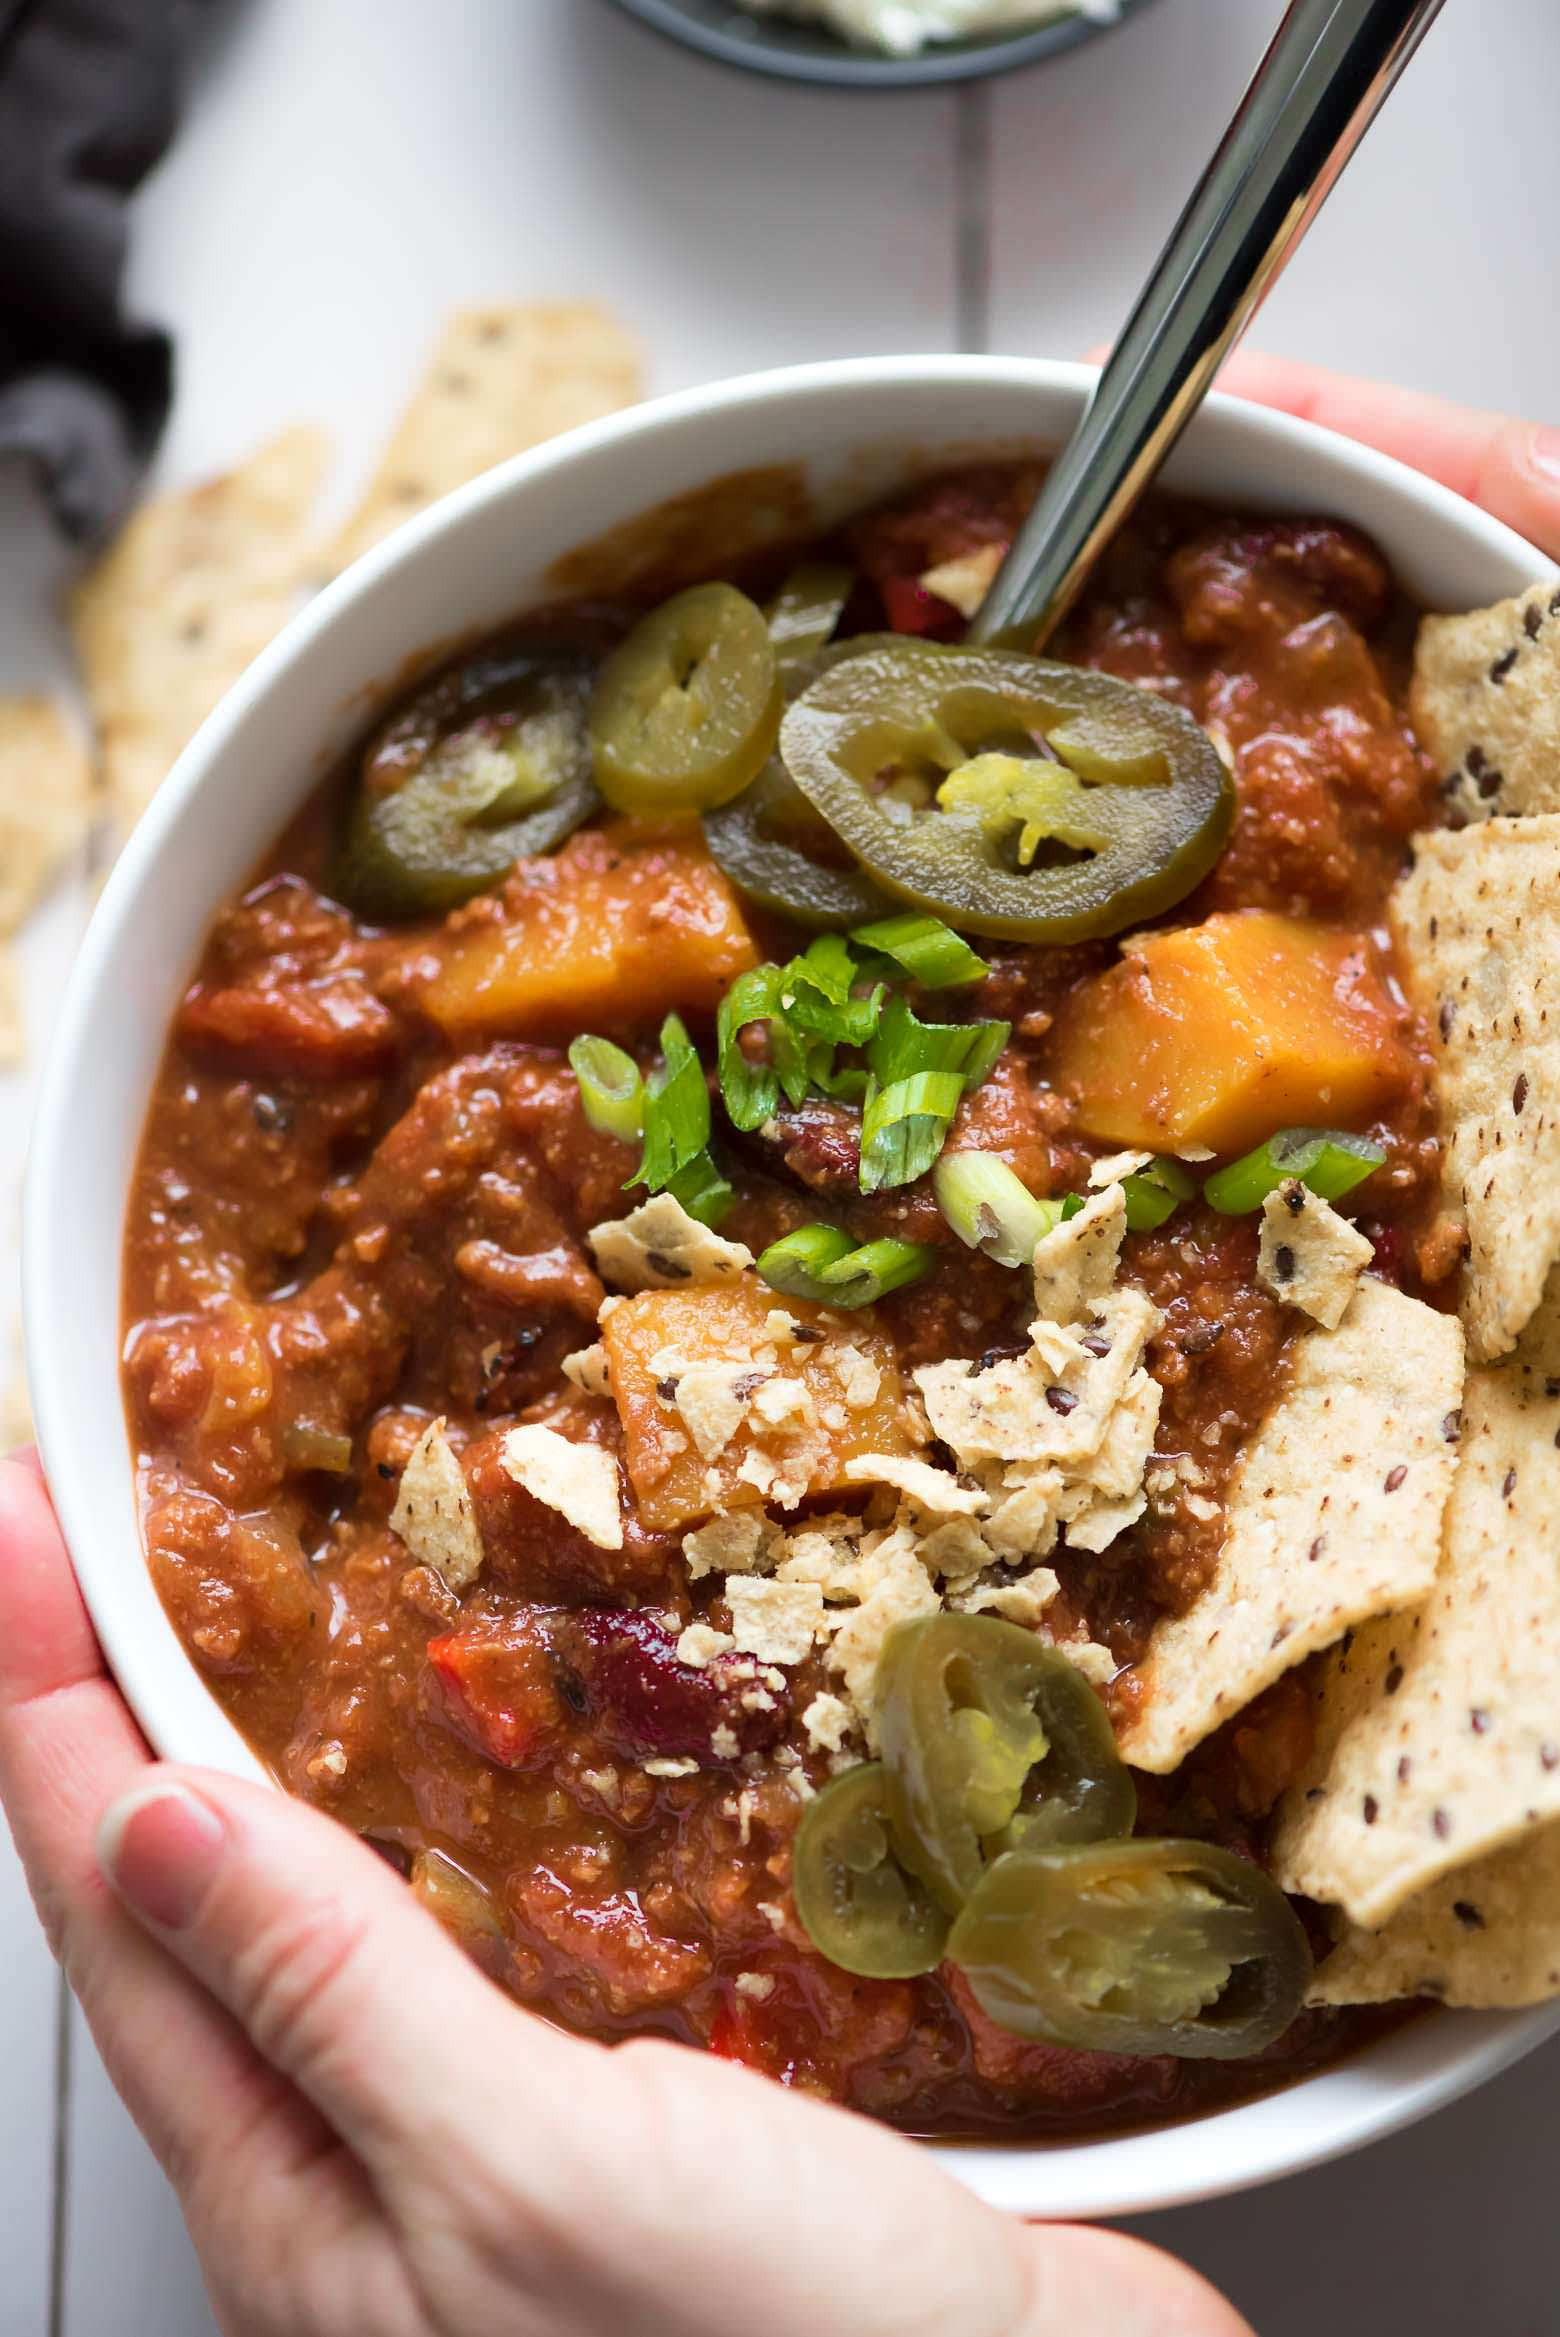 Easy Spicy Healthy Slow Cooker Chili Recipe, Chipotle Ground Turkey, Crockpot, Gluten Free, Butternut Squash, Beans, Spicy, Clean, Comfort Foods